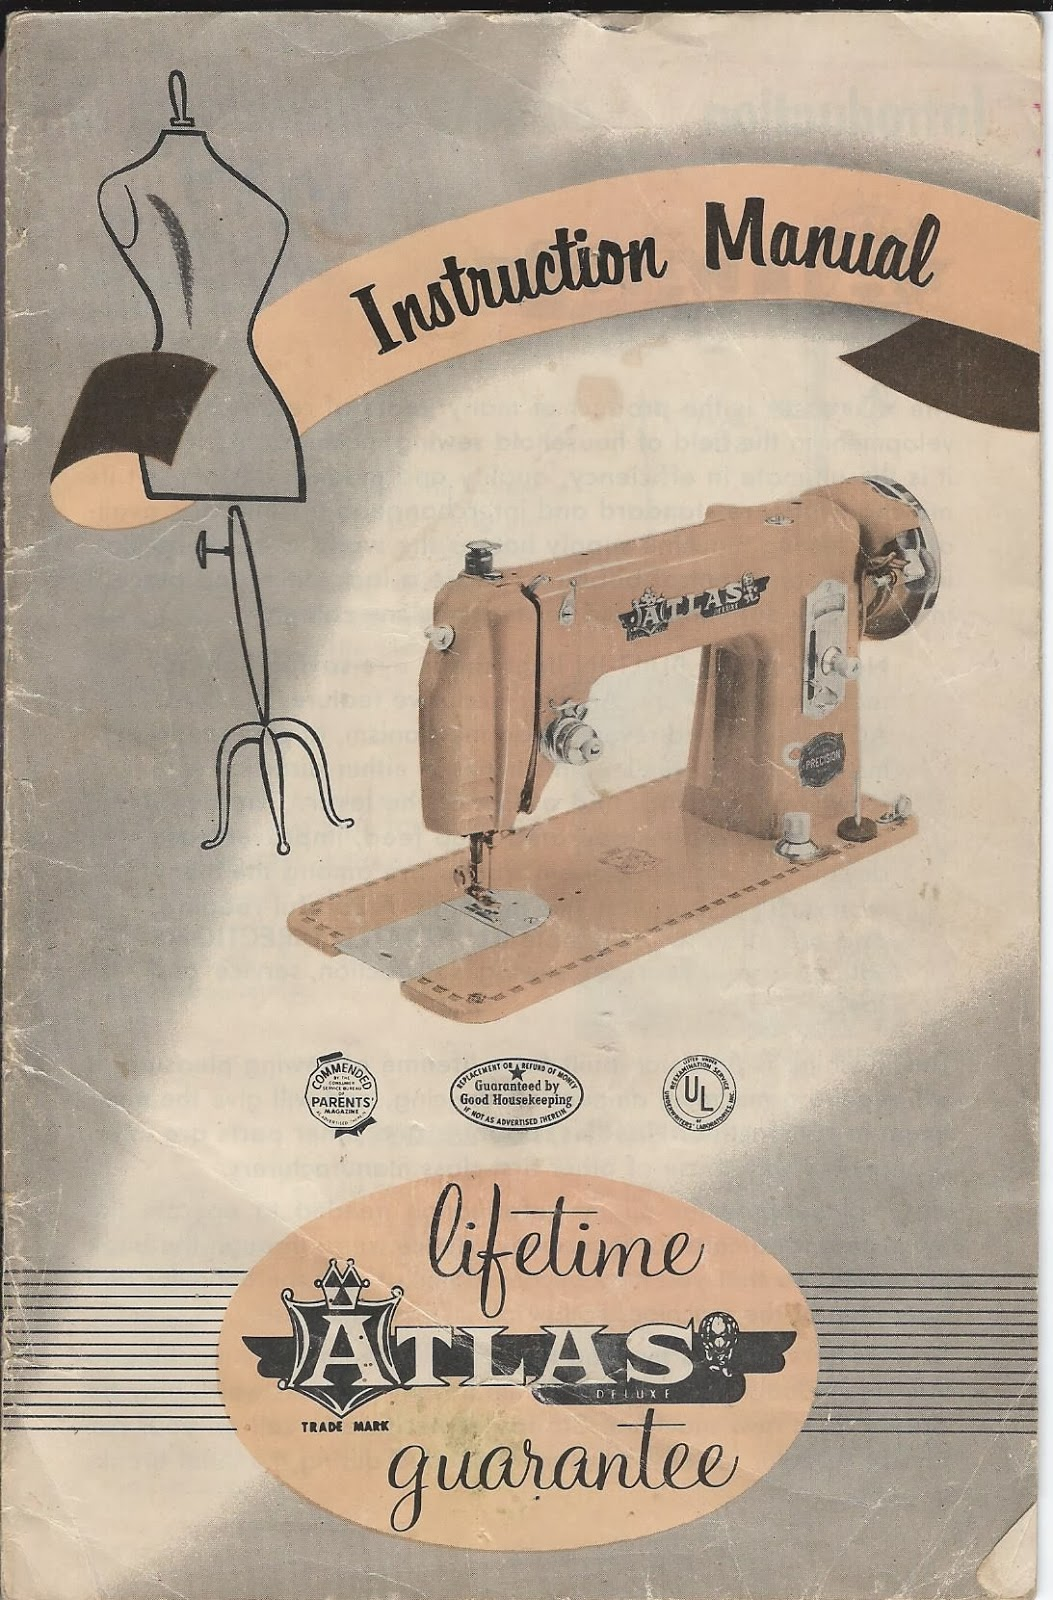 A tale of two quilters: atlas sewing machine manual.